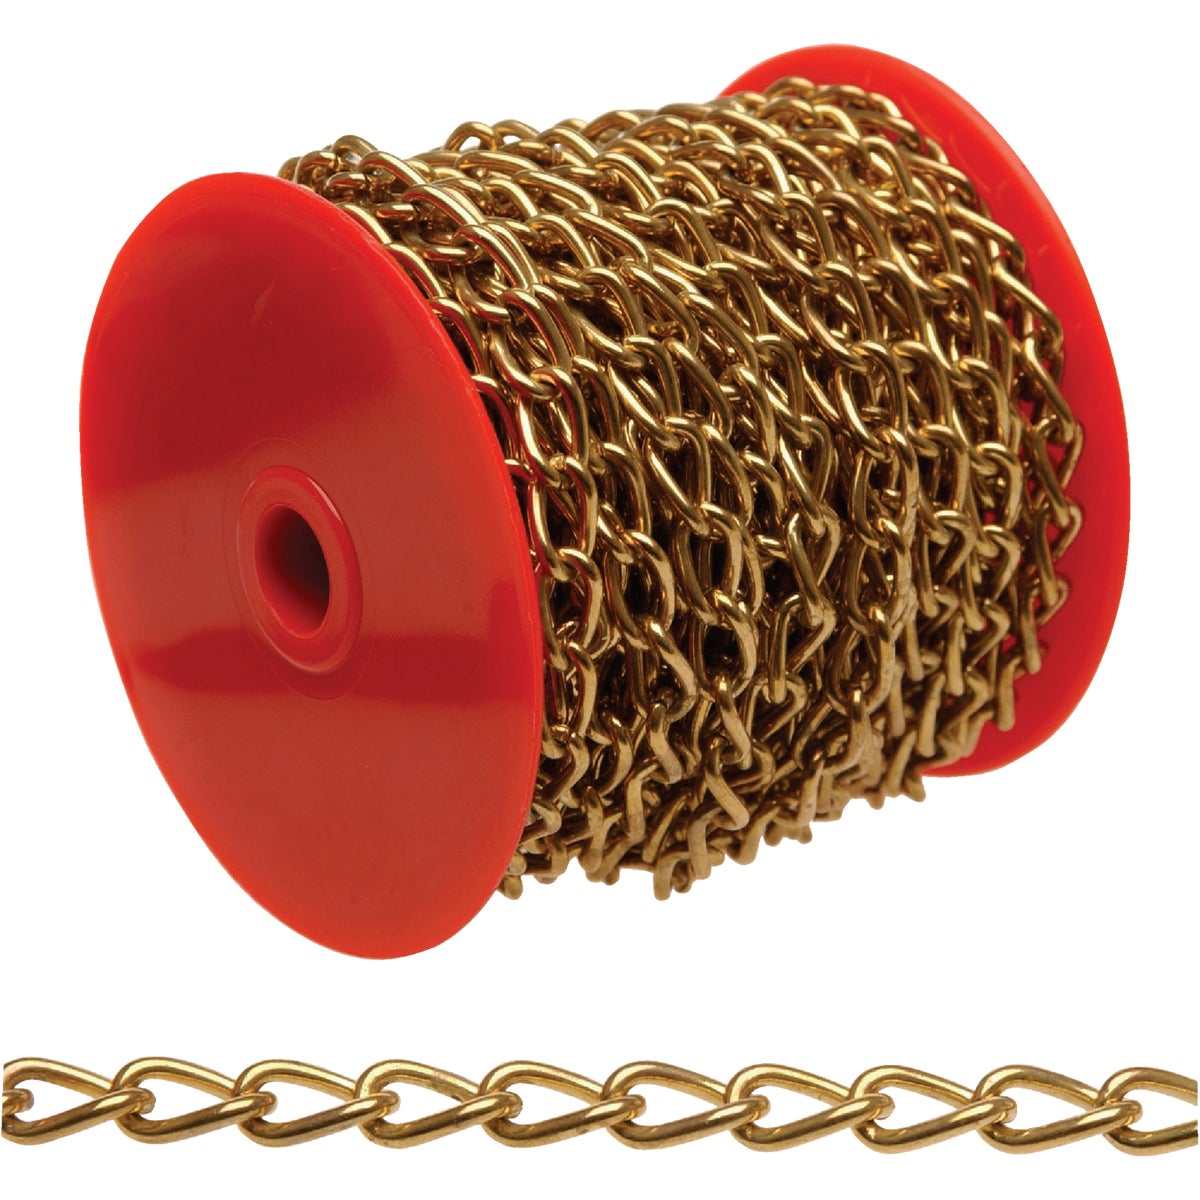 33' #250 BRS TWIST CHAIN - 0712517 by Cooper Campbell Apex